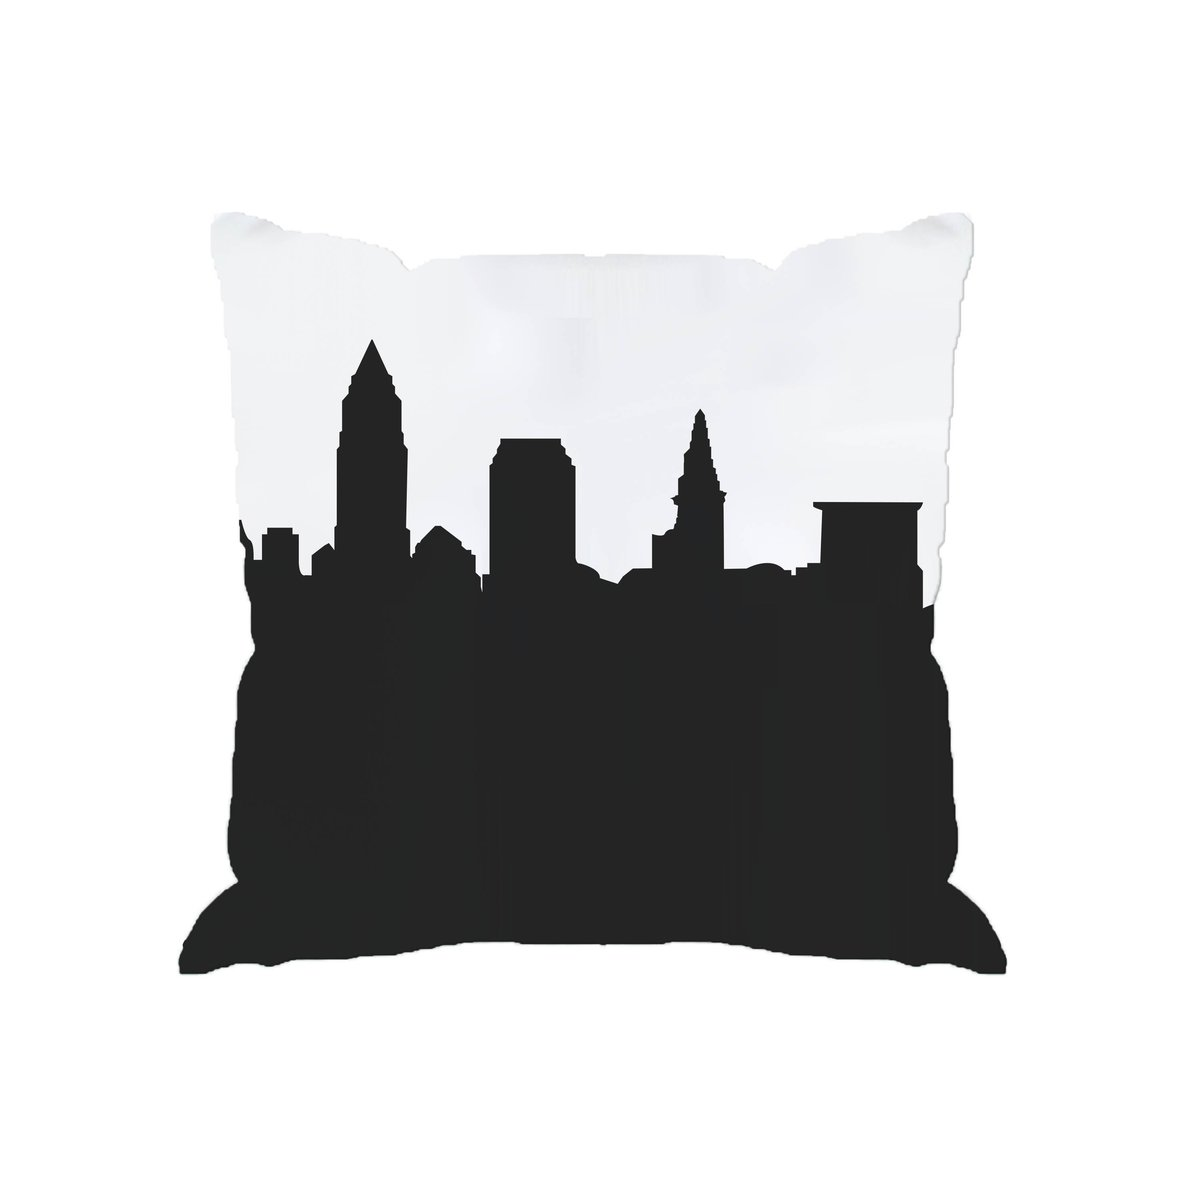 1200x1200 Skyline Silhouette Cityscape Large Throw Pillow Anne Cate